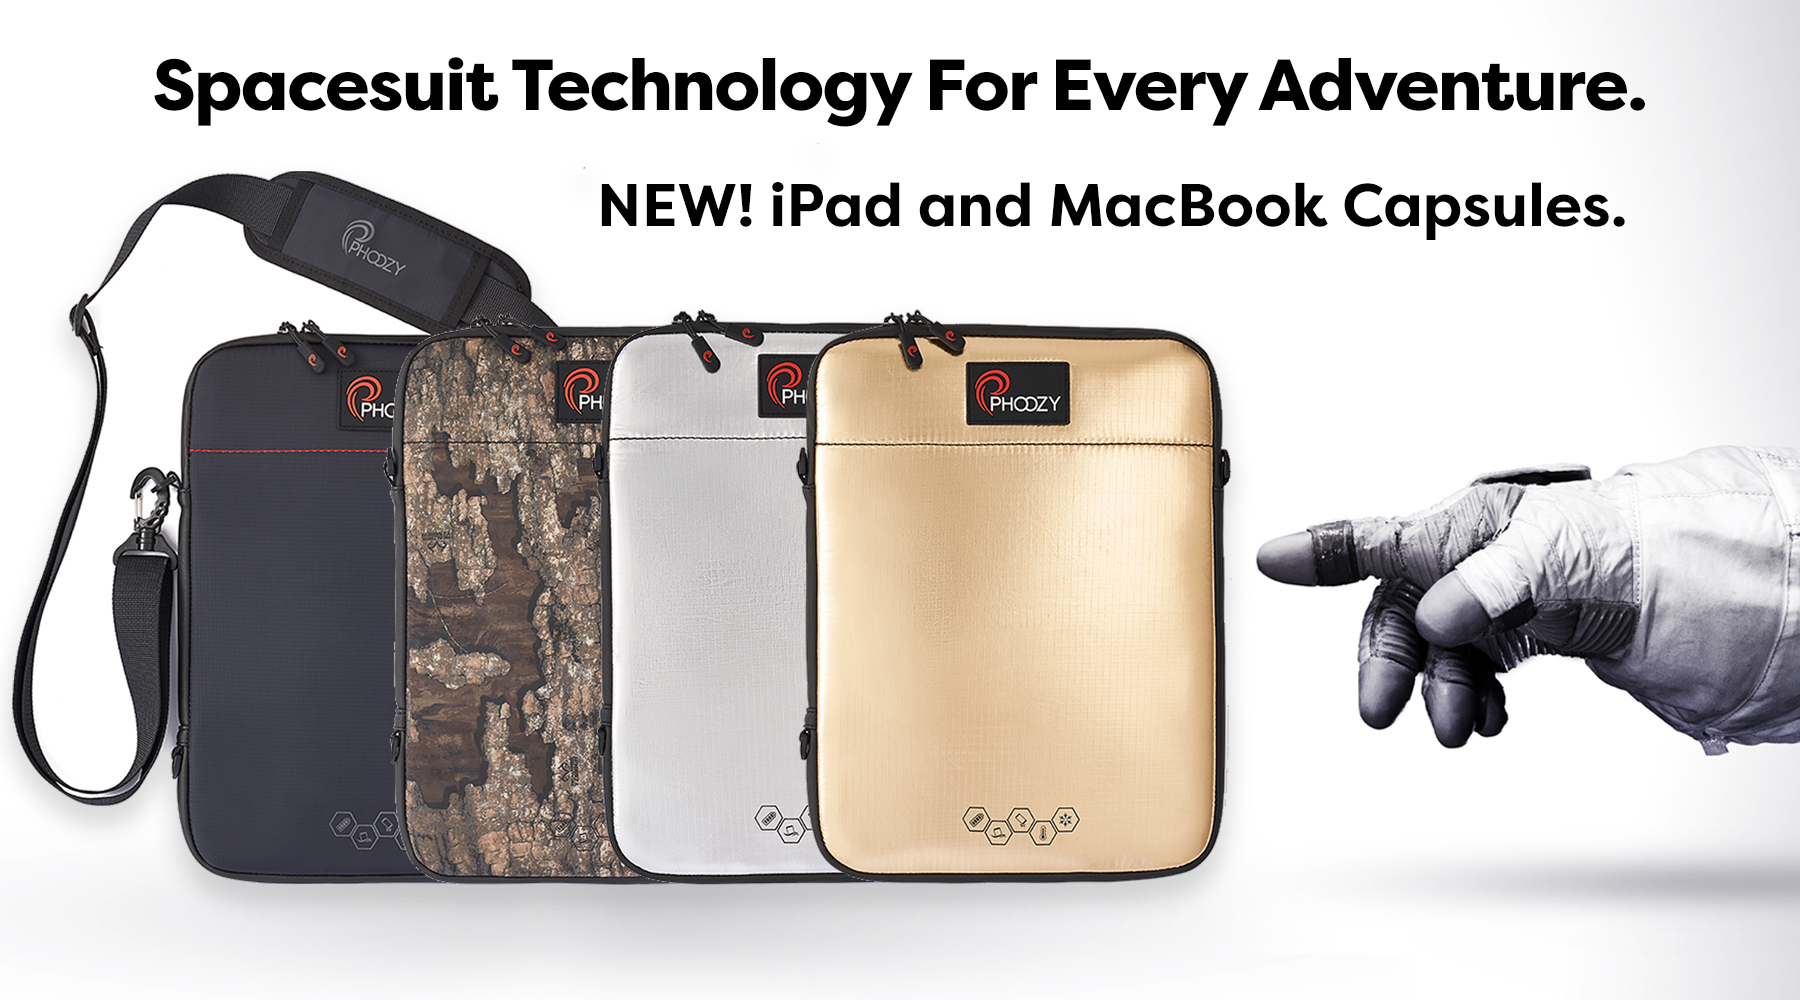 New! iPad and MacBook Capsules